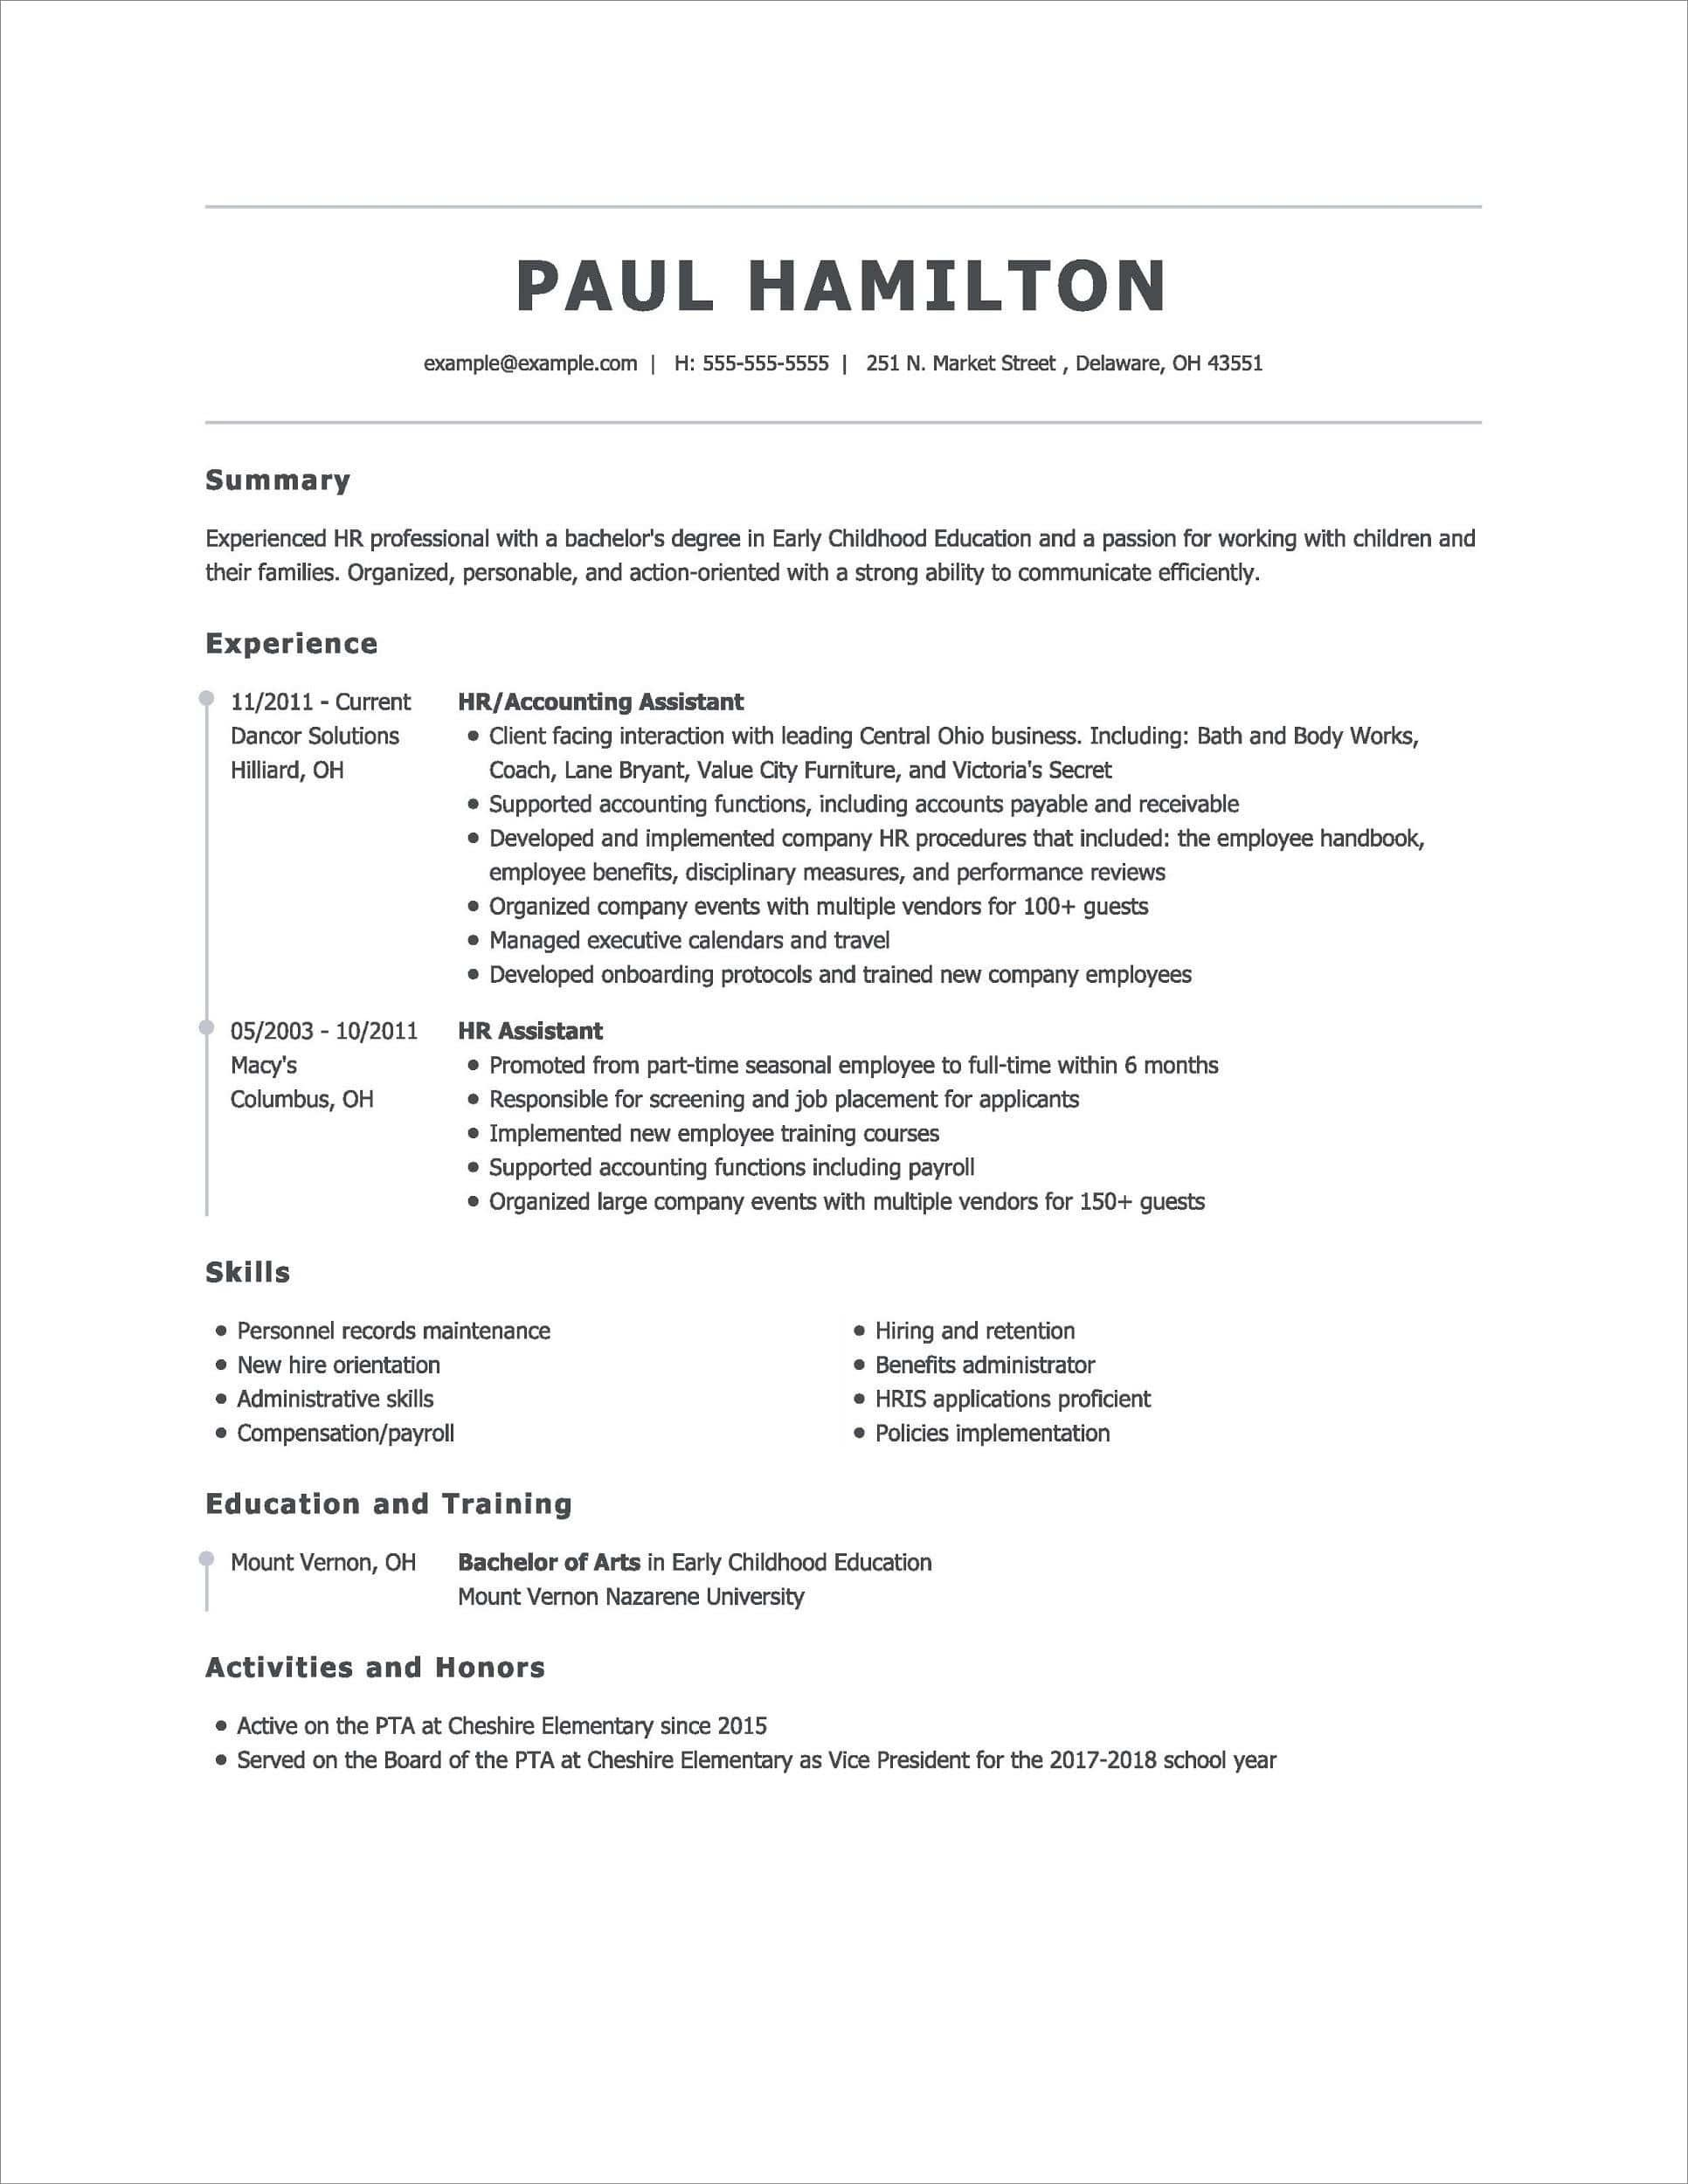 What to look out for, what structure to use, and what common mistakes to avoid when writing a professional resume. 15 Best Online Resume Builders 2021 Free Paid Features